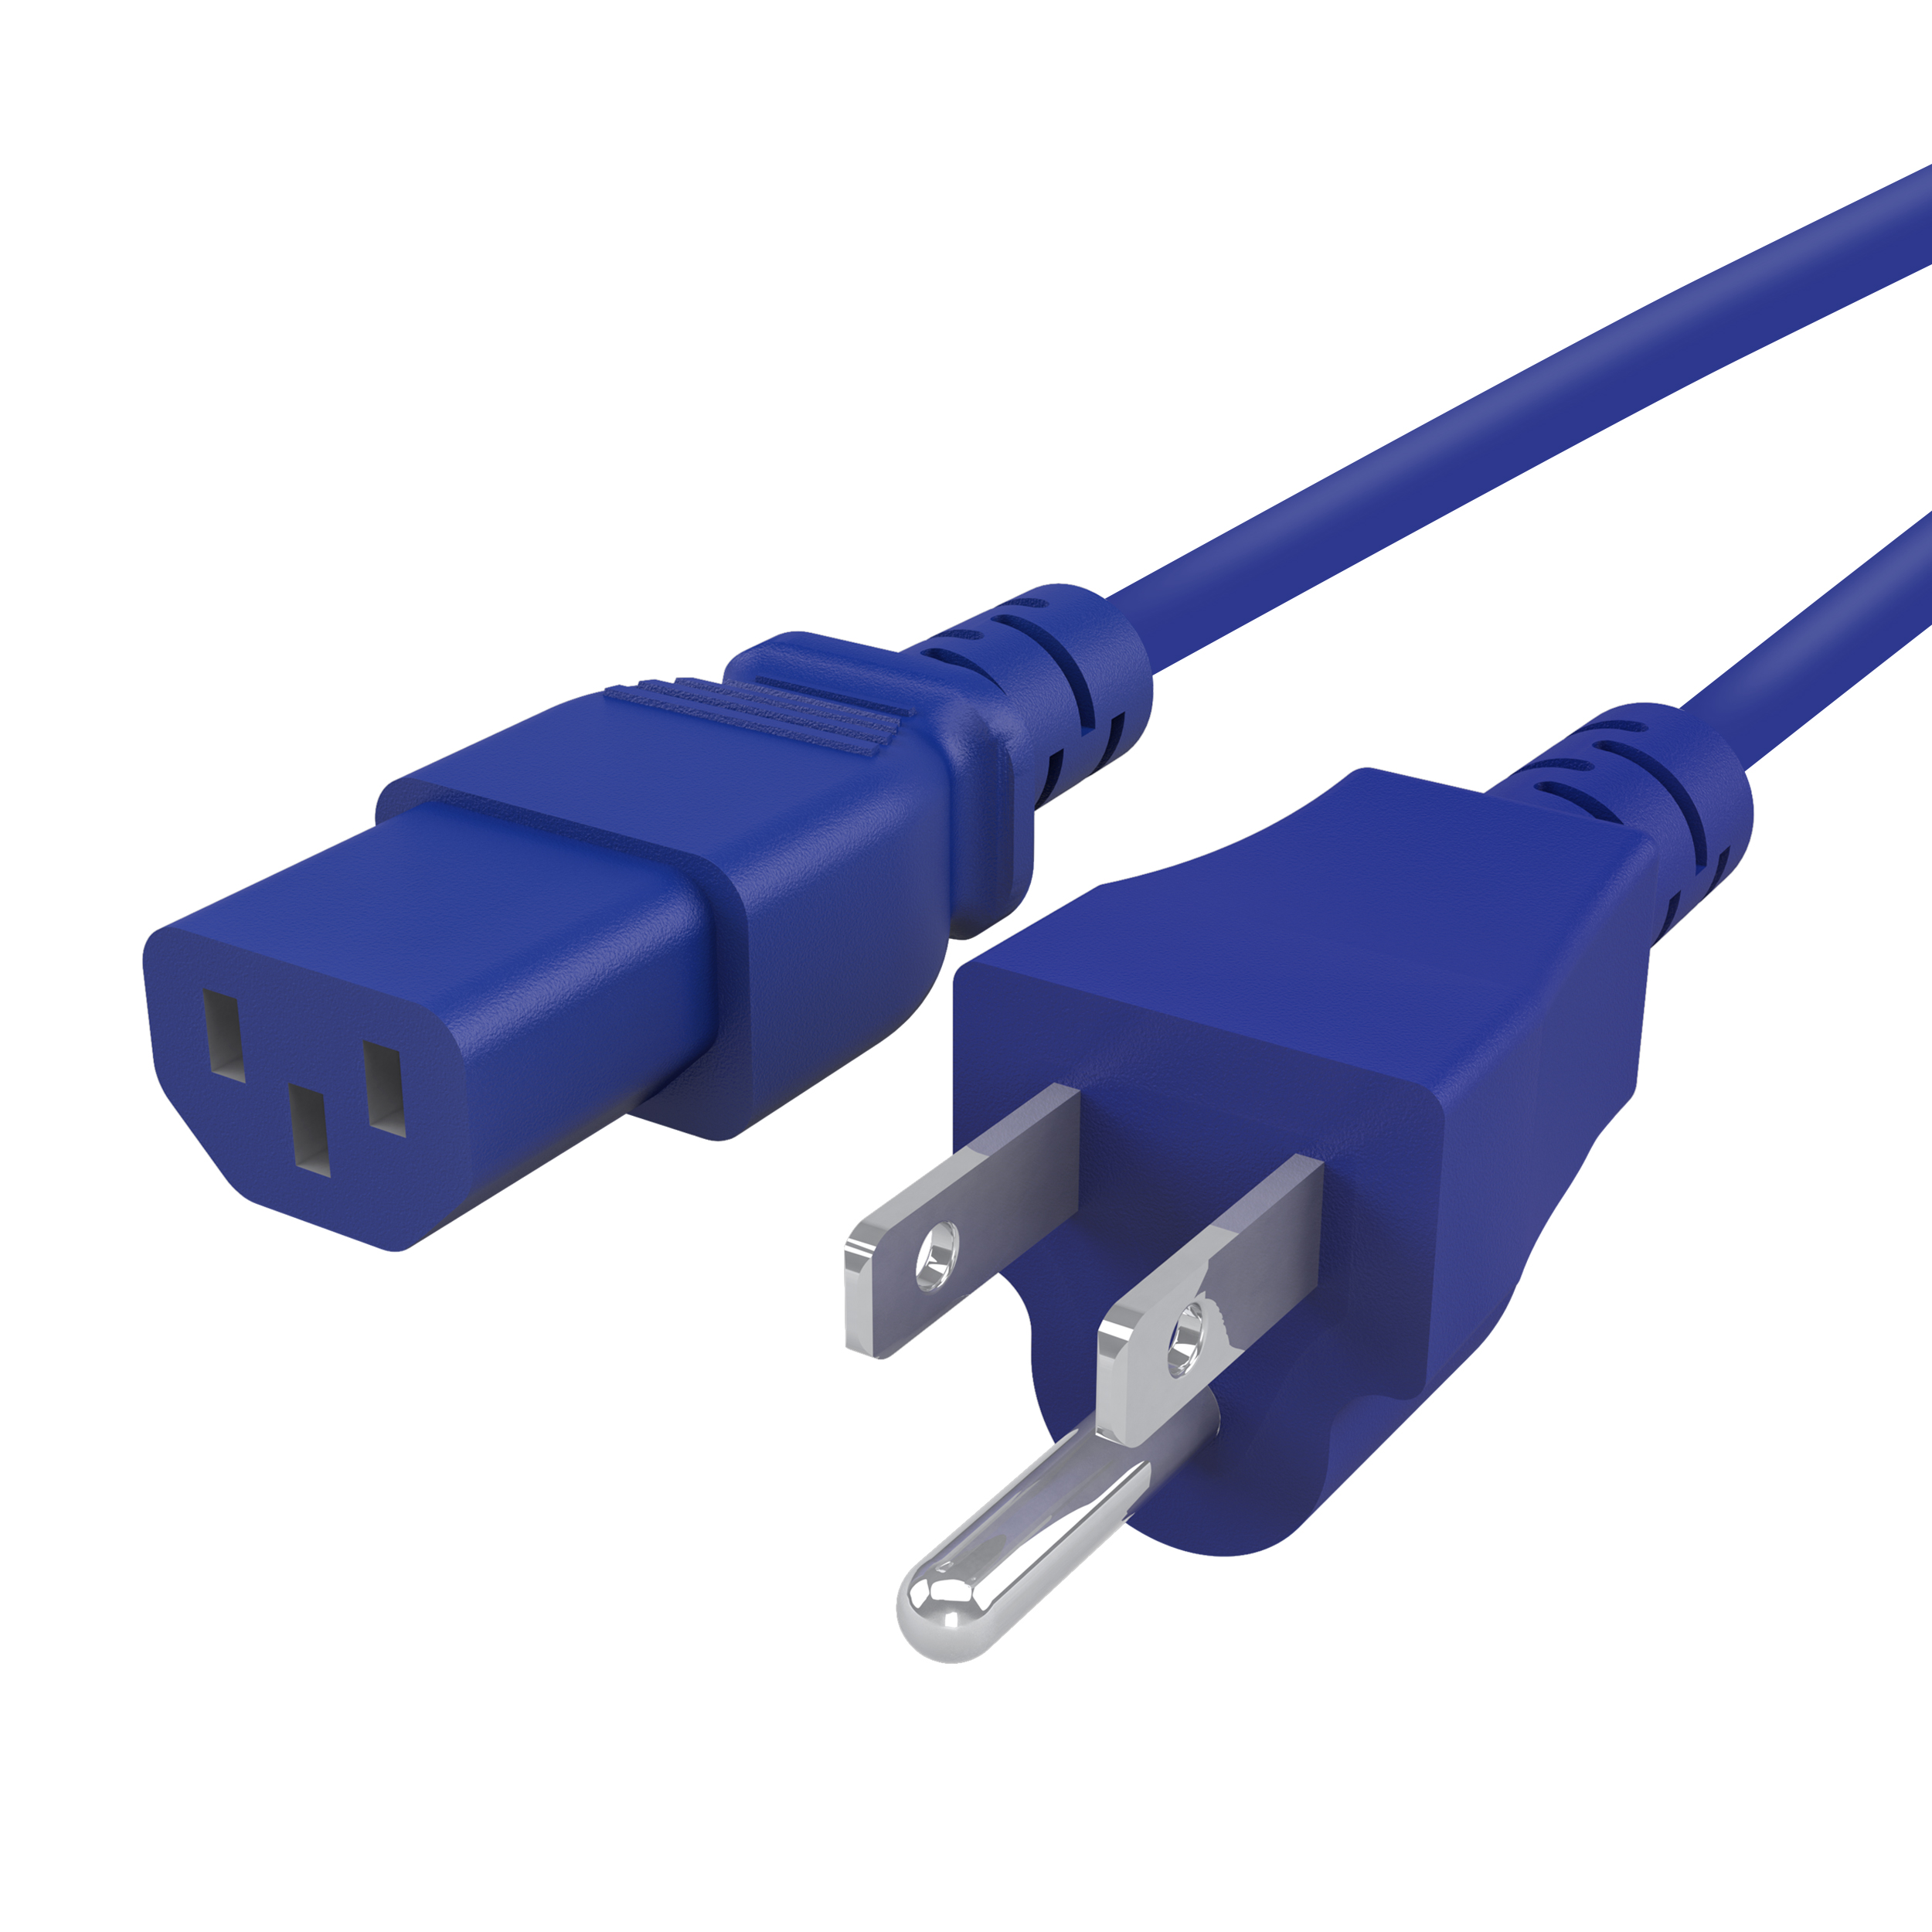 GearIt 18 AWG Universal Power Cord NEMA 5-15P to IEC320 C13 [UL Listed], Blue (1 Foot/0.3 Meters)